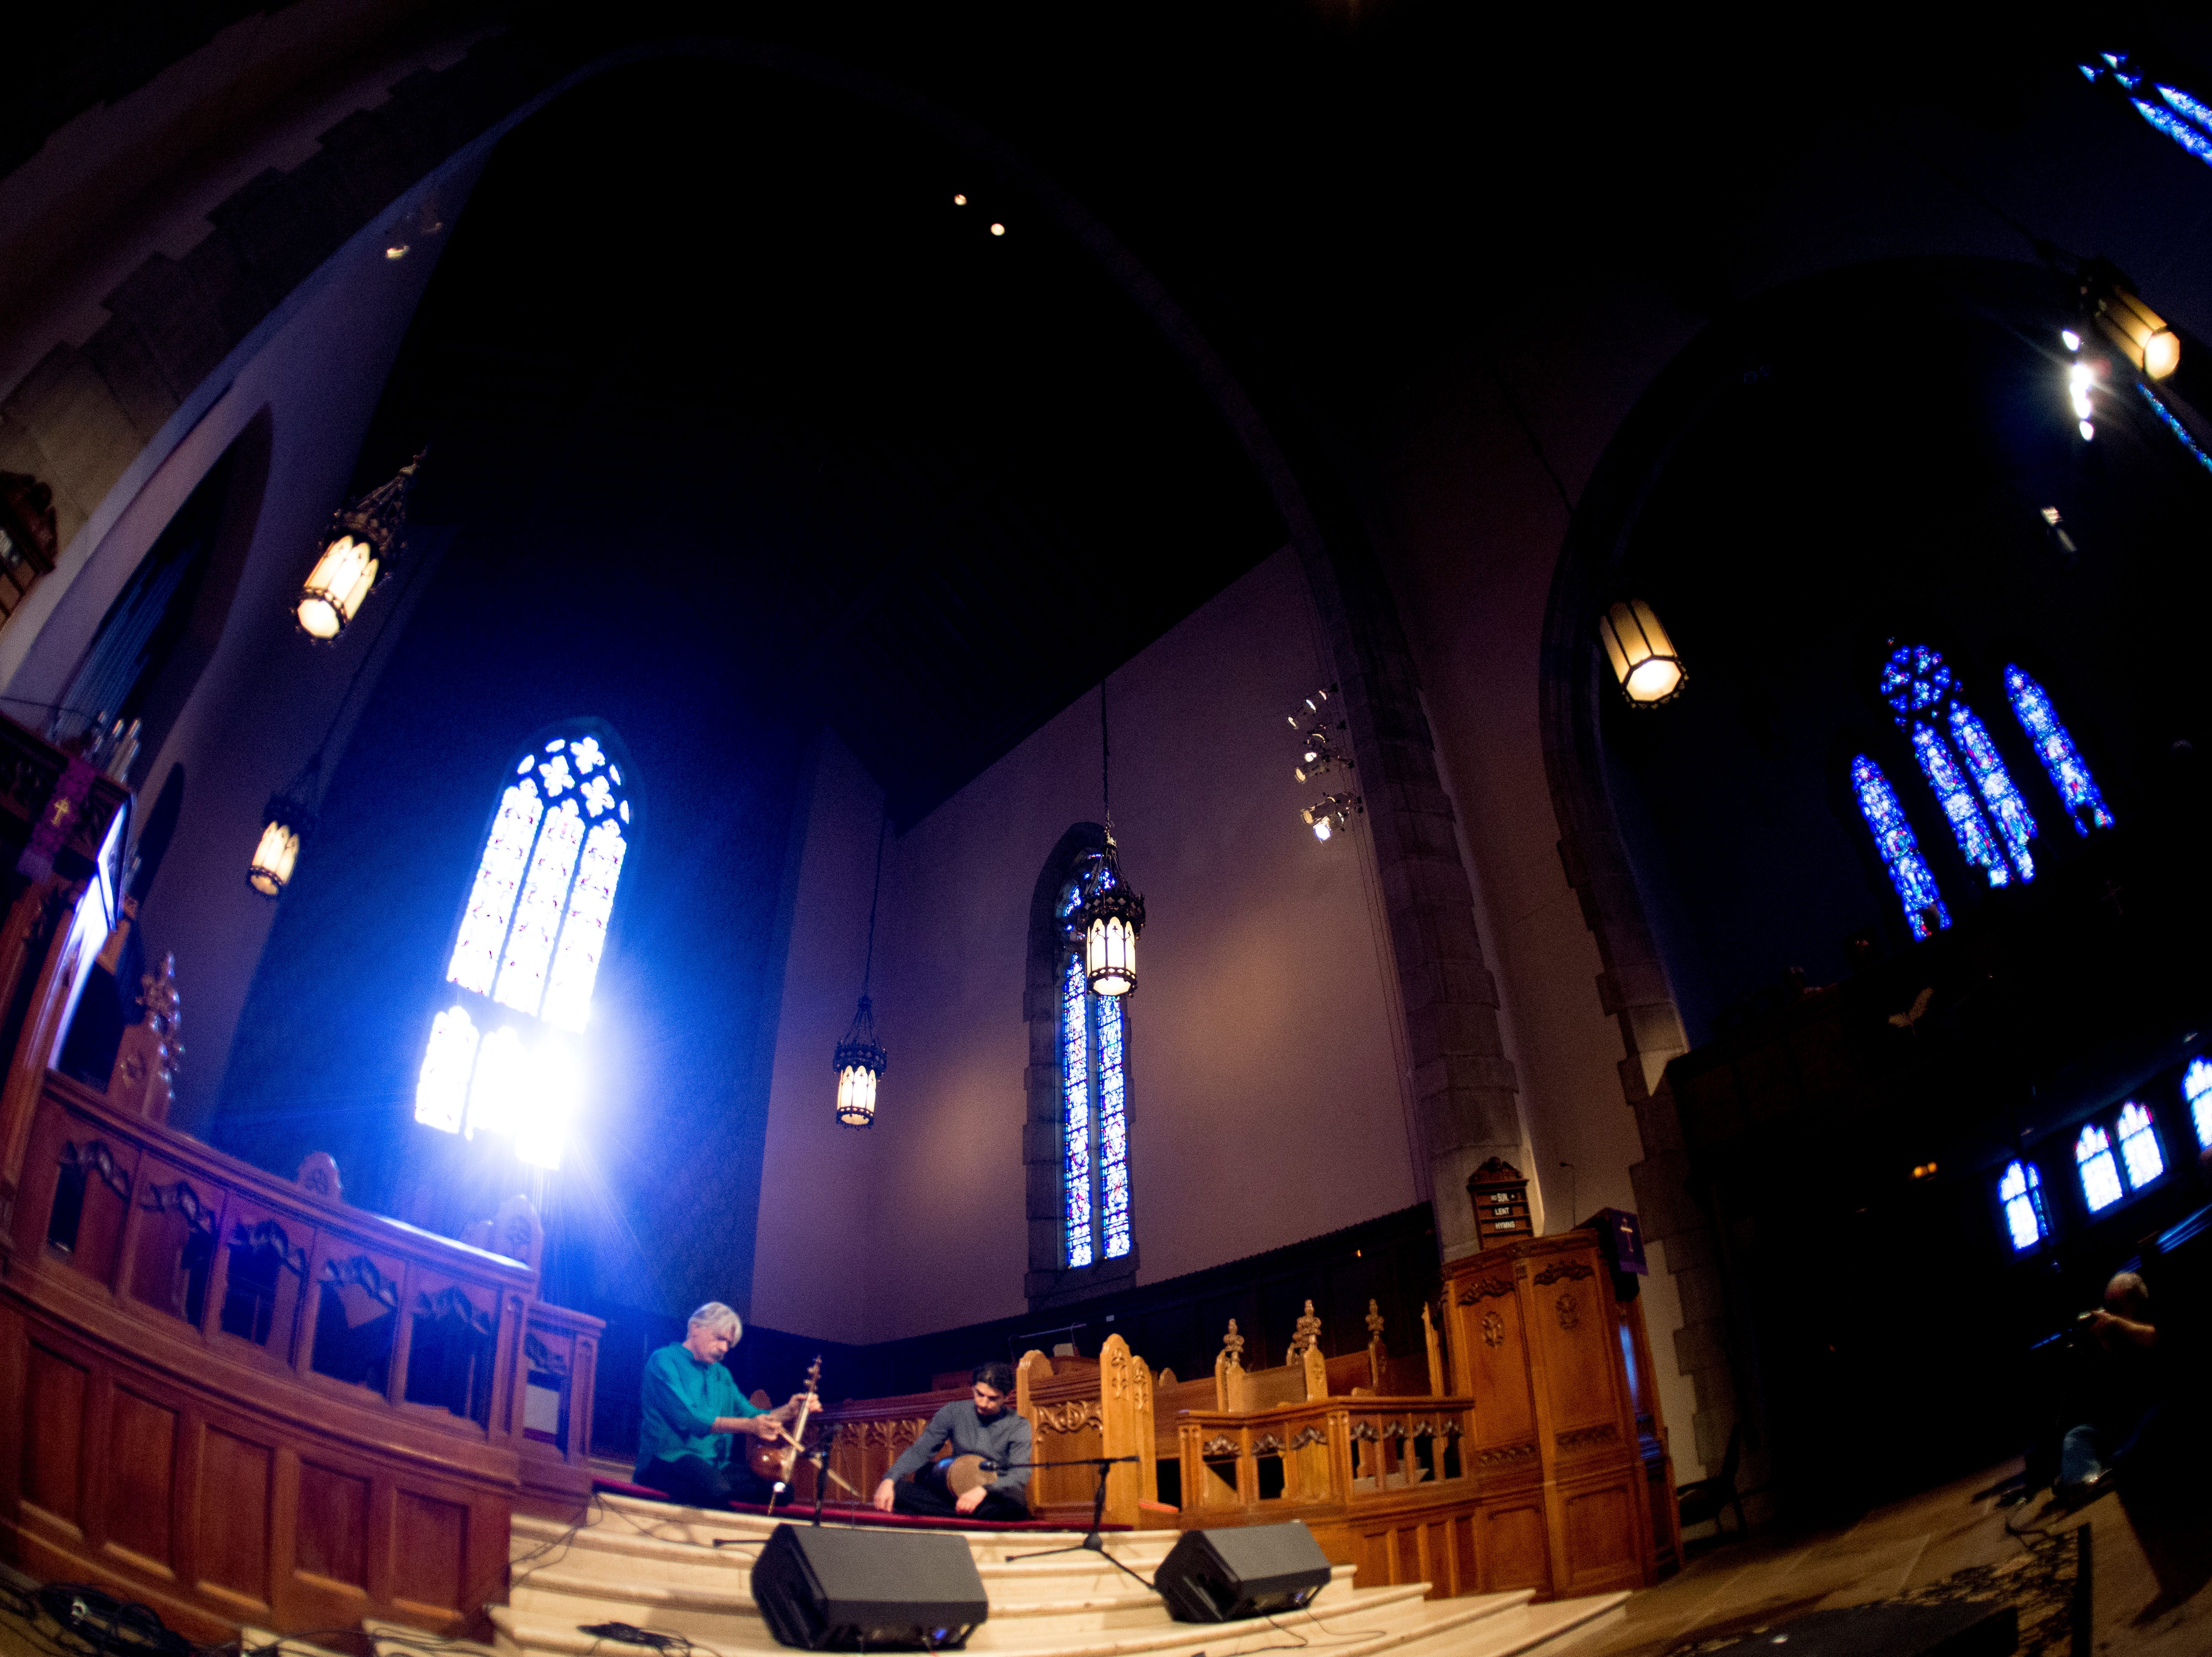 Kayhan Kalhor performs at Church Street United Methodist at Big Ears Festival 2019 in Knoxville, Tennessee on Saturday, March 23, 2019.